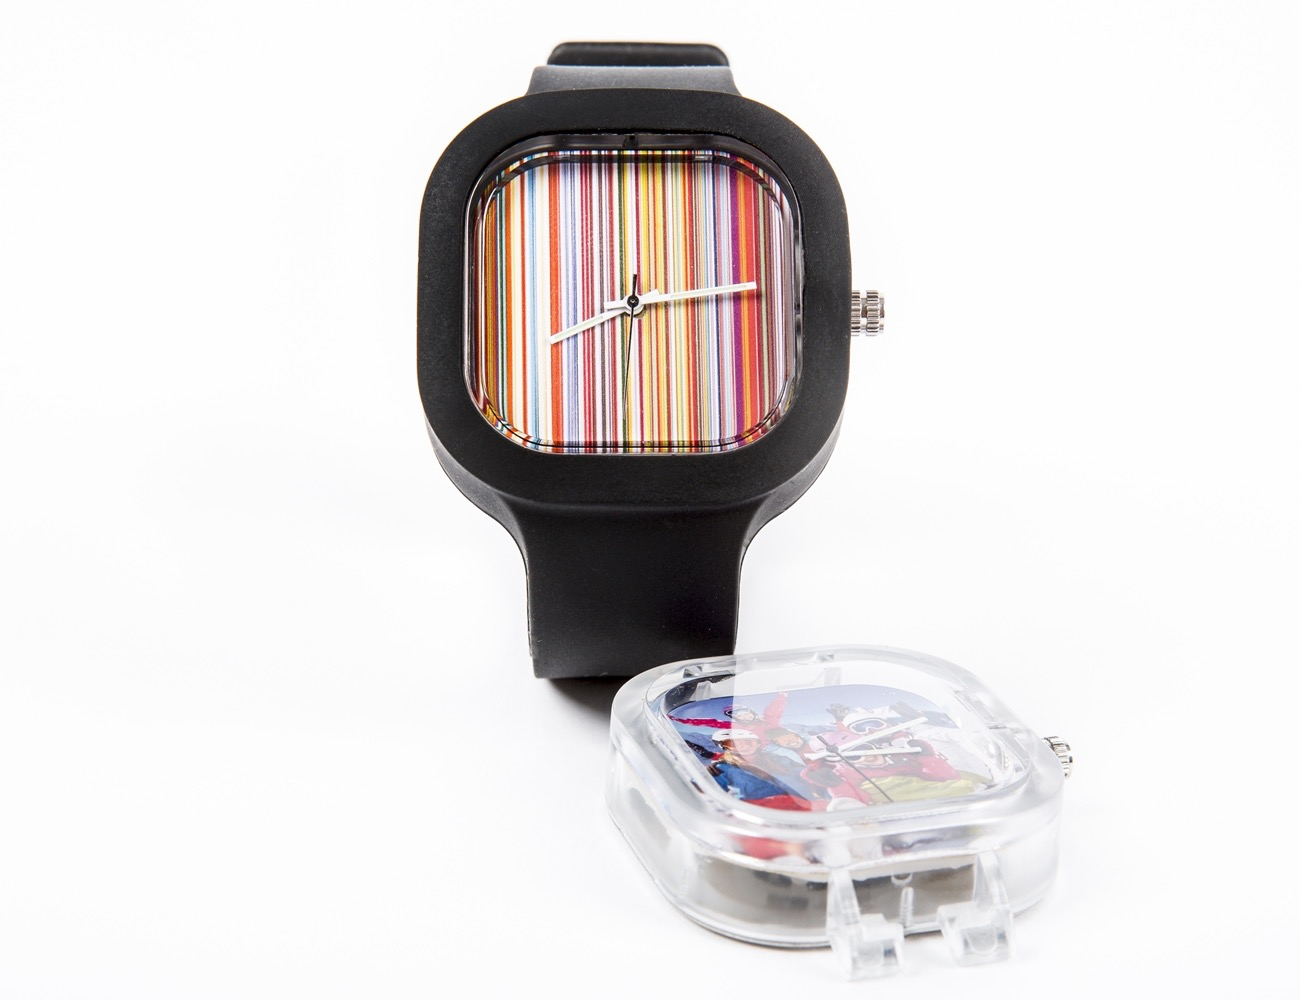 Zeewatches – Create, Buy And Sell Your Own Watch